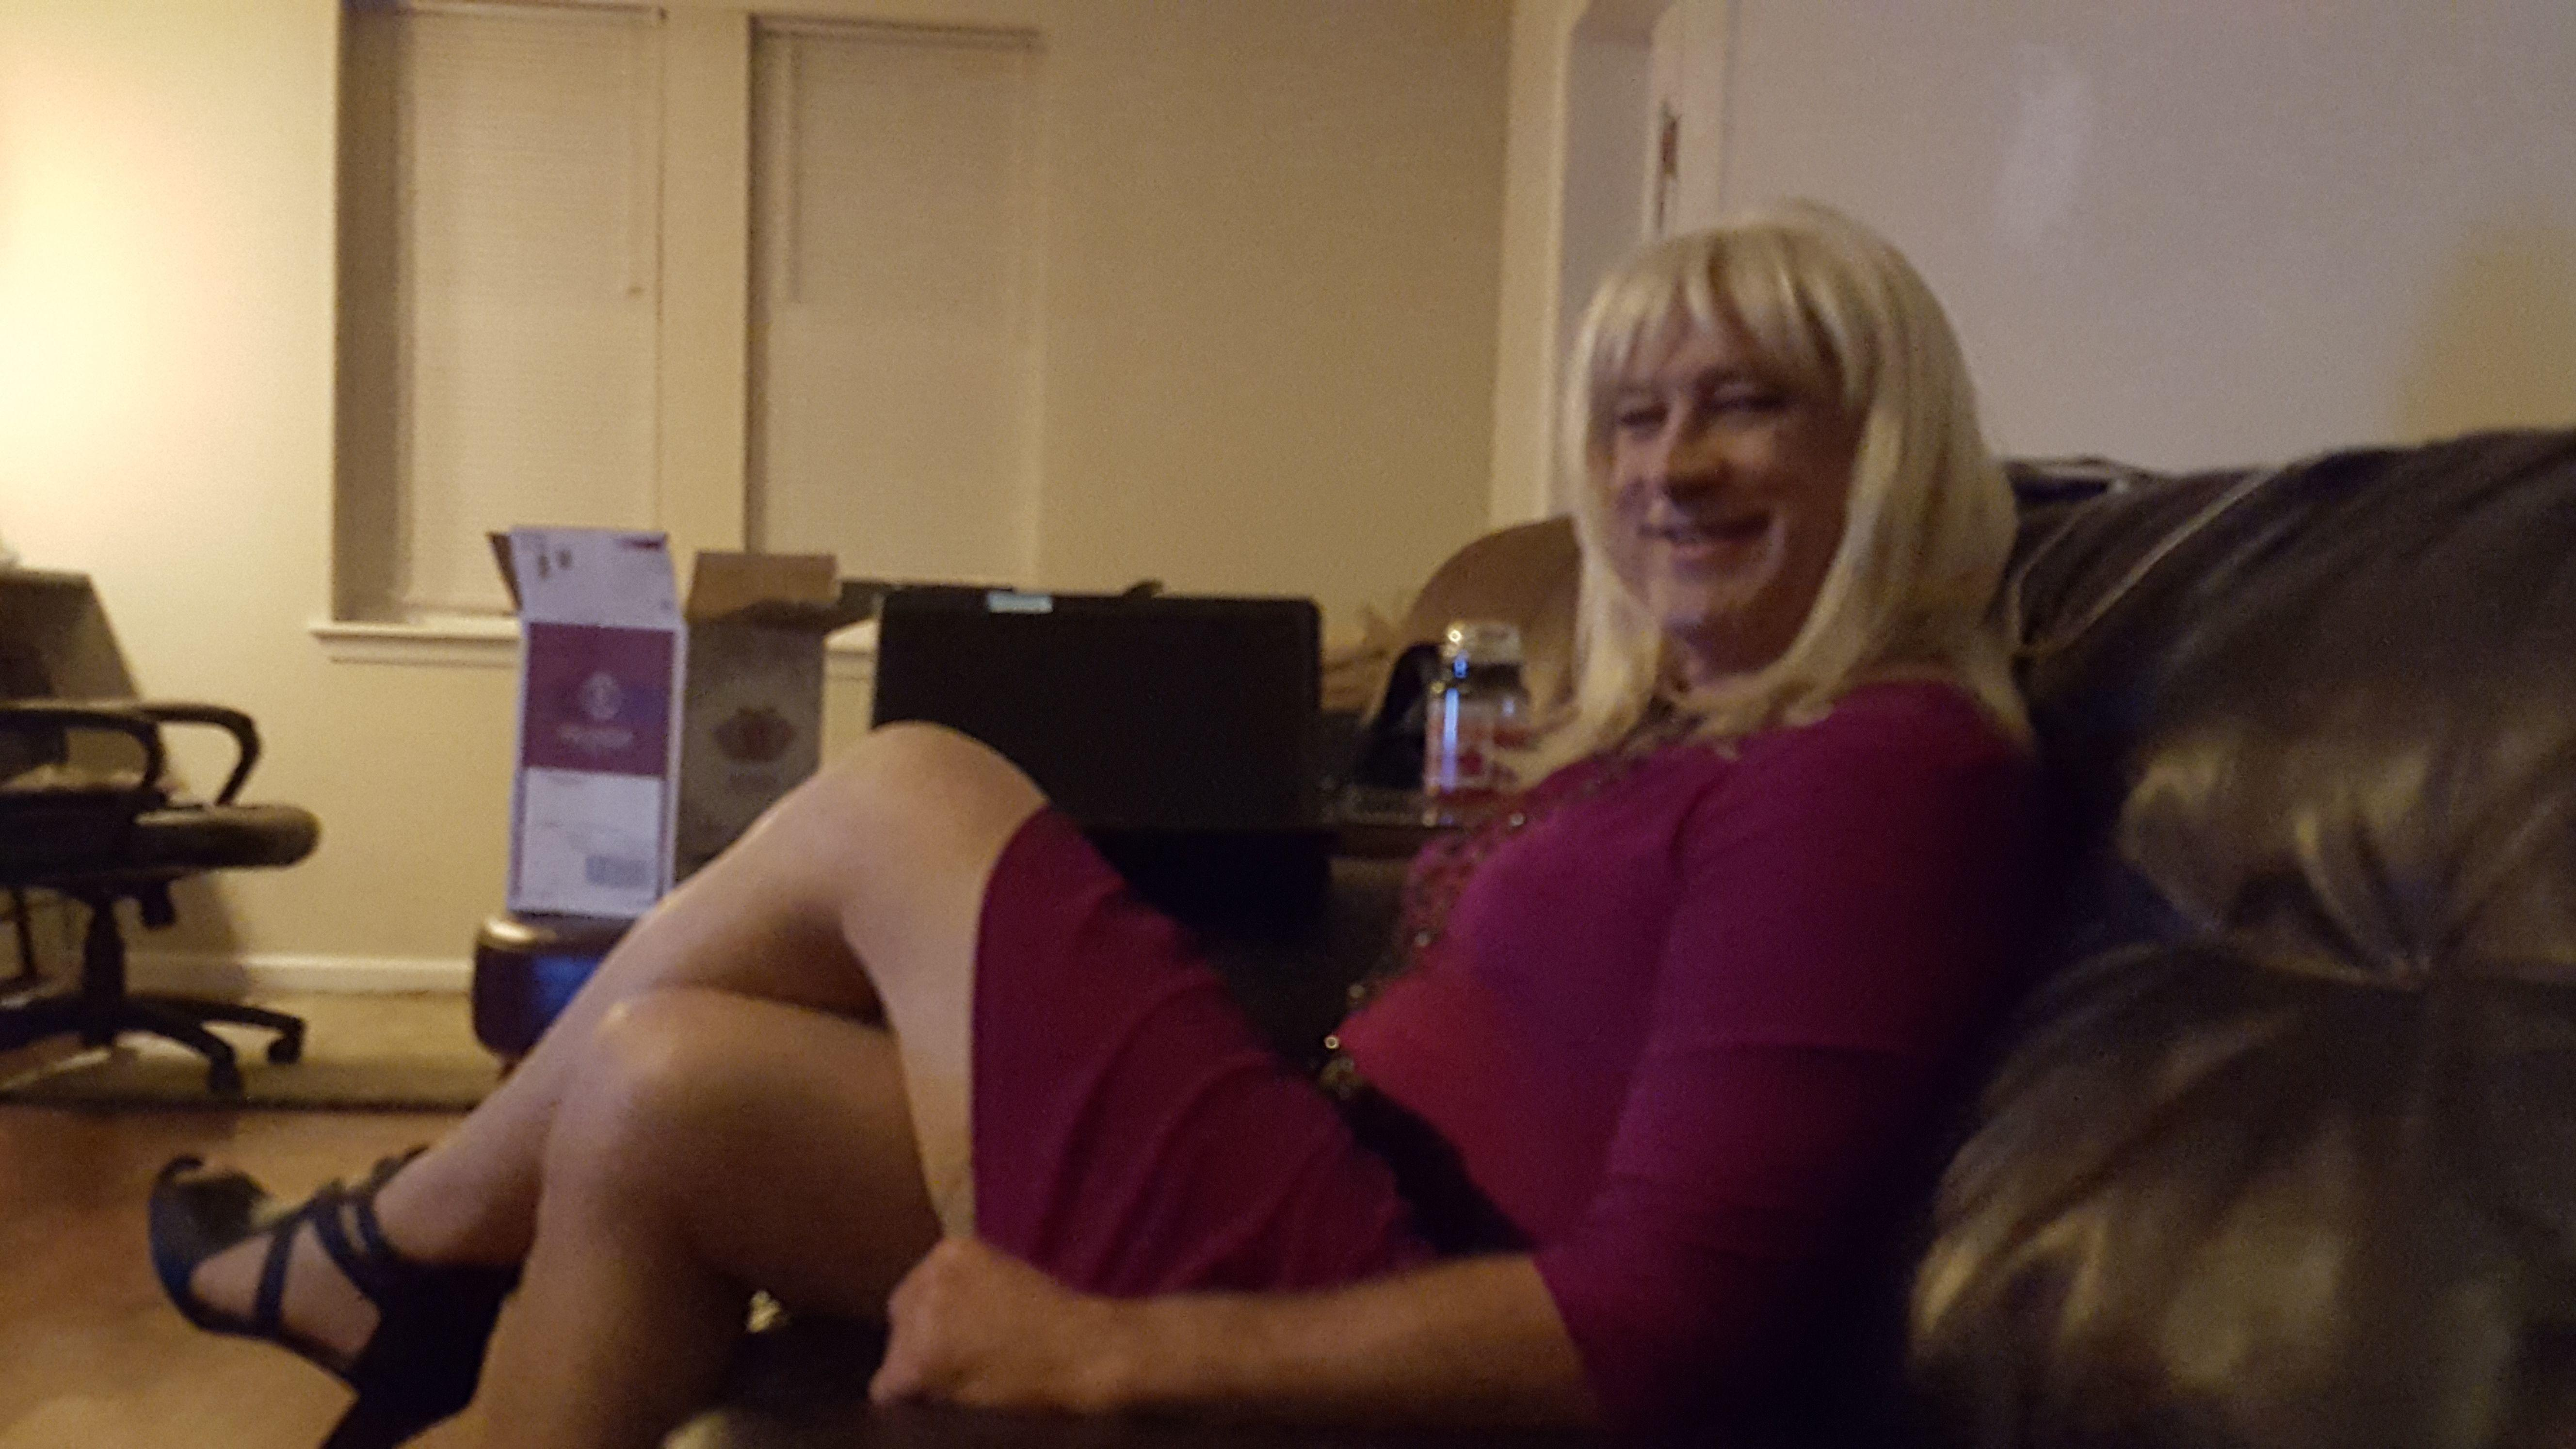 2 Bedroom Apartments In Orlando Crossdressers Meetups Meetup Paula The Dc Regional Trans